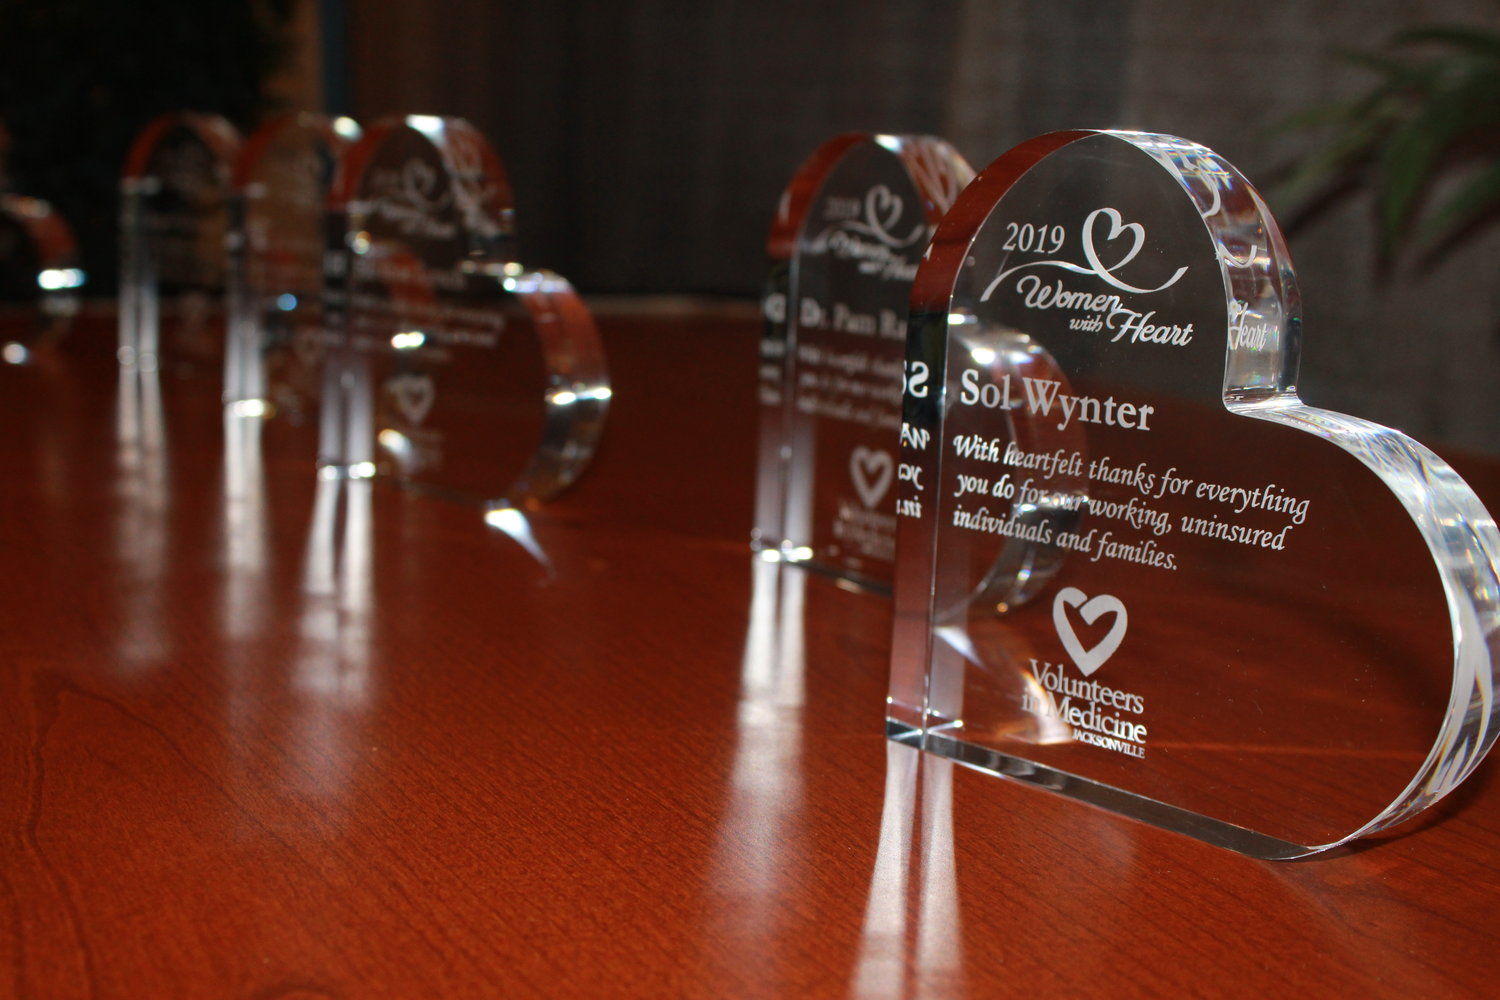 The Women with Heart luncheon honored 12 local women for their contributions to the community.